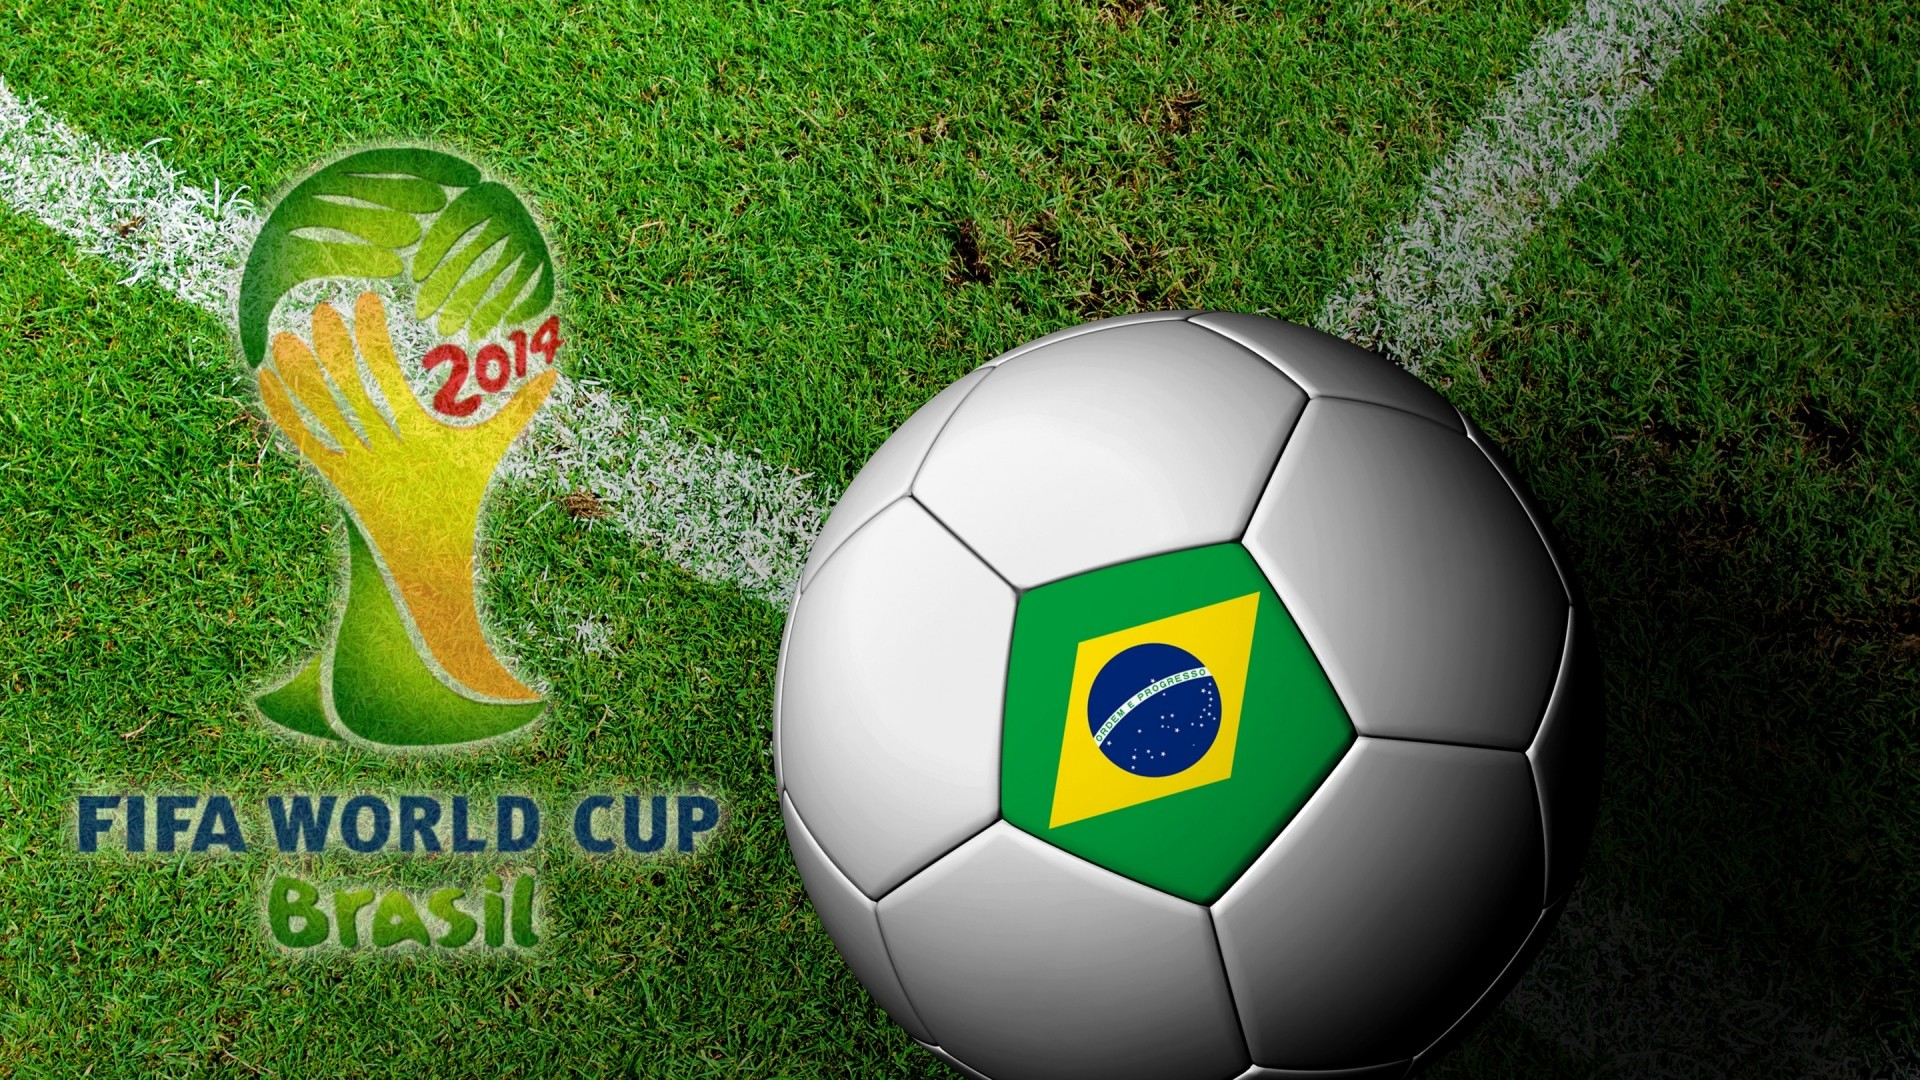 1920x1080  Wallpaper brasil, fifa, world cup, 2014, football, ball